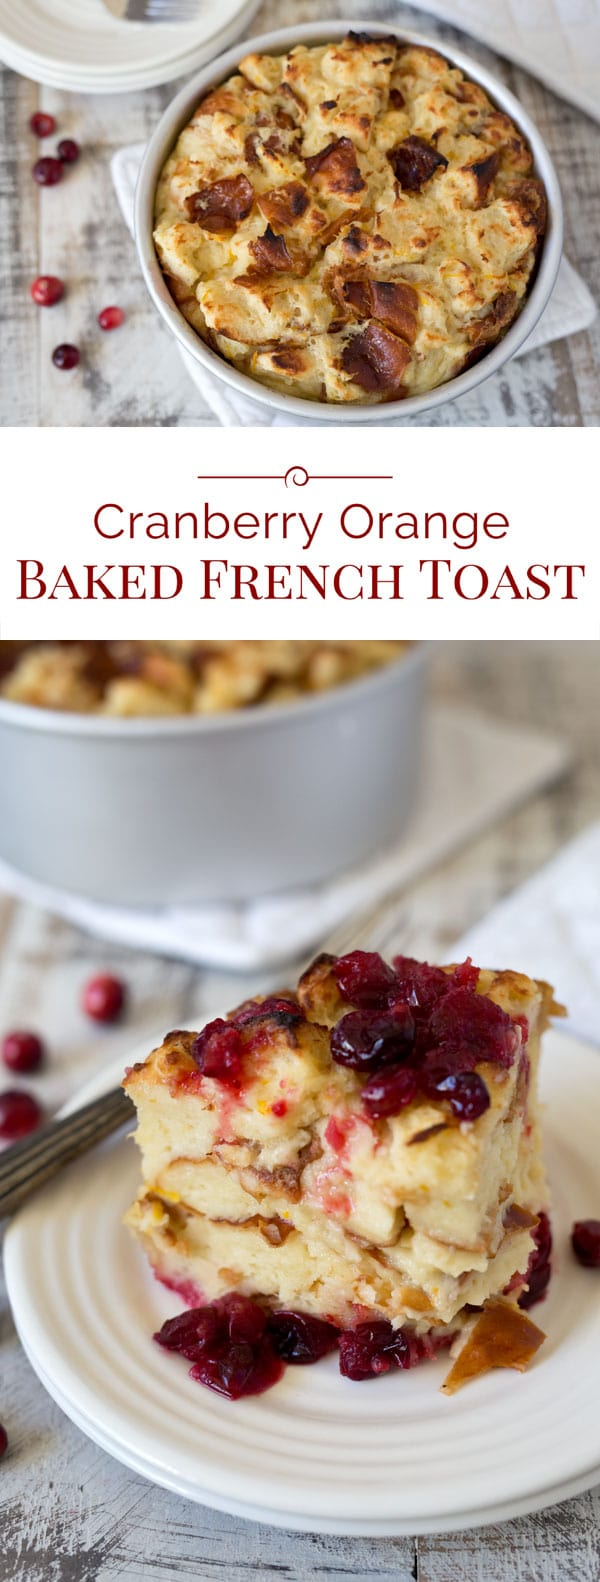 "This luscious Pressure Cooker Cranberry Baked French Toast is a perfect holiday breakfast. Tart fresh cranberries in a sweet orange sauce are topped with cubed Challah bread soaked in butter, milk, and eggs, and then ""baked"" to create a bread pudding style French Toast."